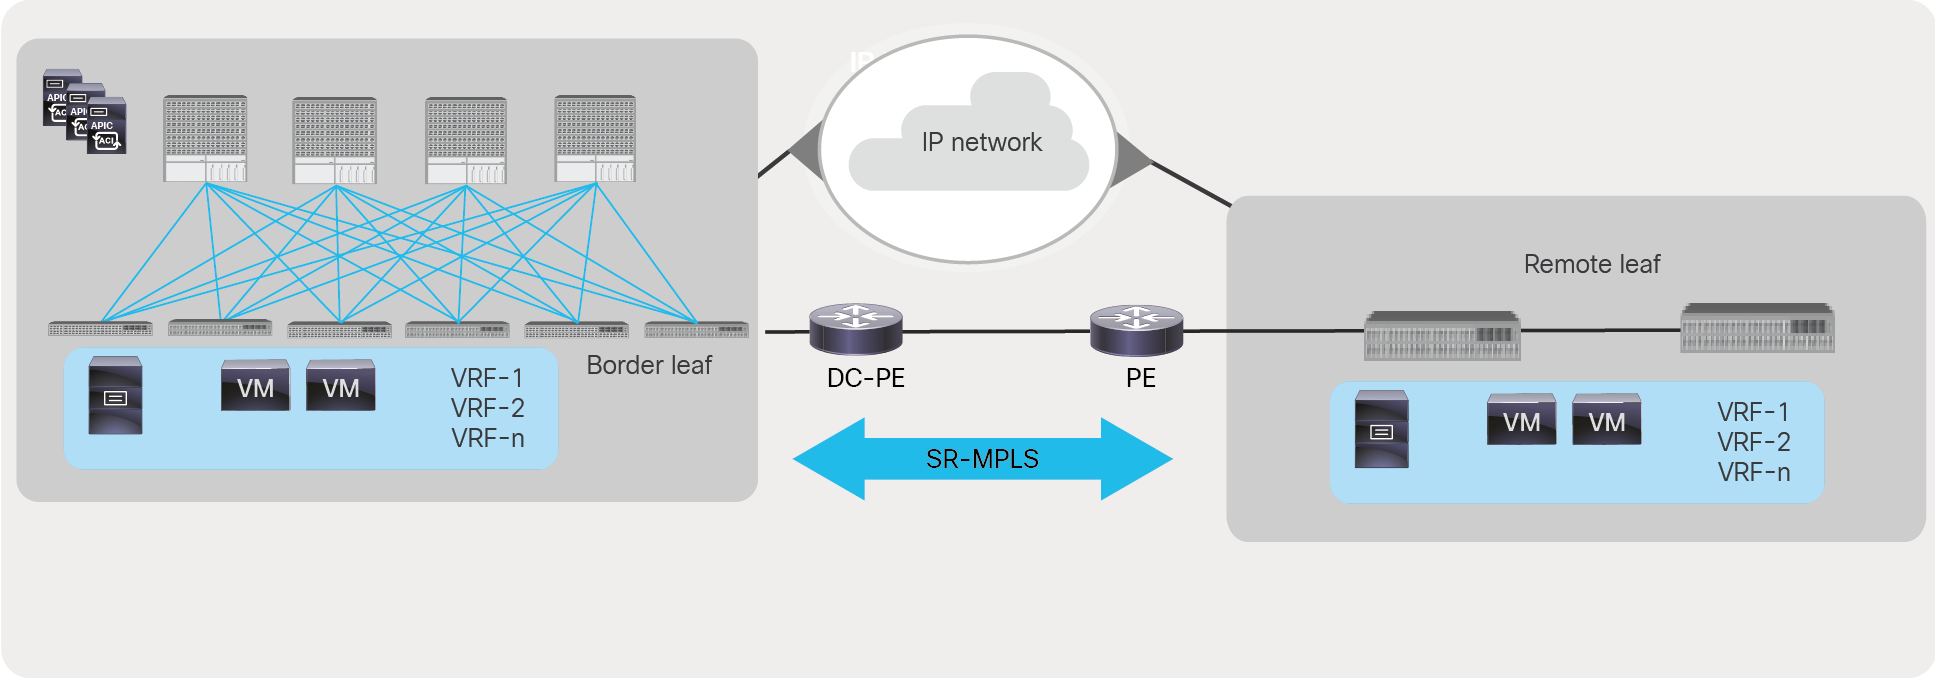 Data center to data center traffic flow monitoring with SR/MPLS handoff